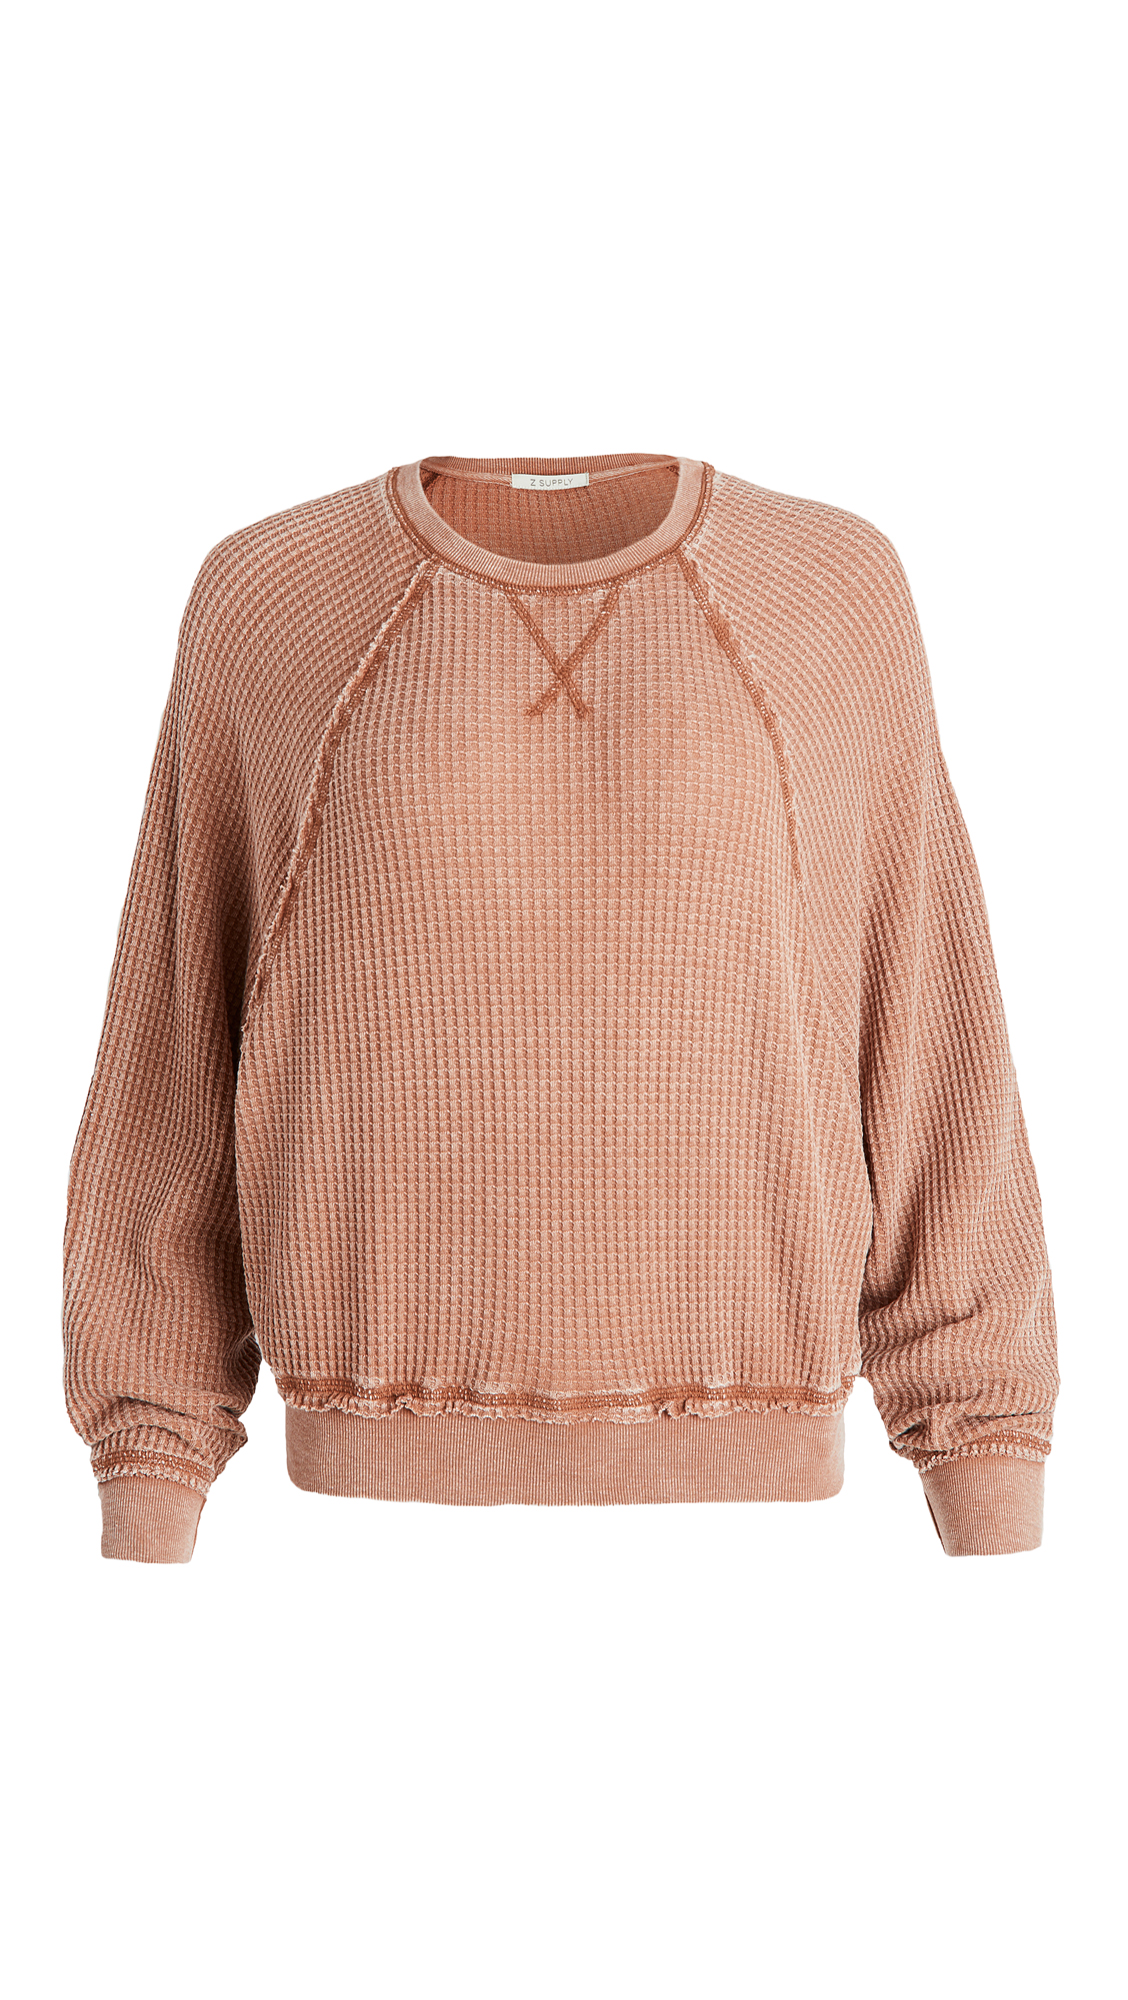 Z Supply Claire Waffle Long Sleeve Sweatshirt